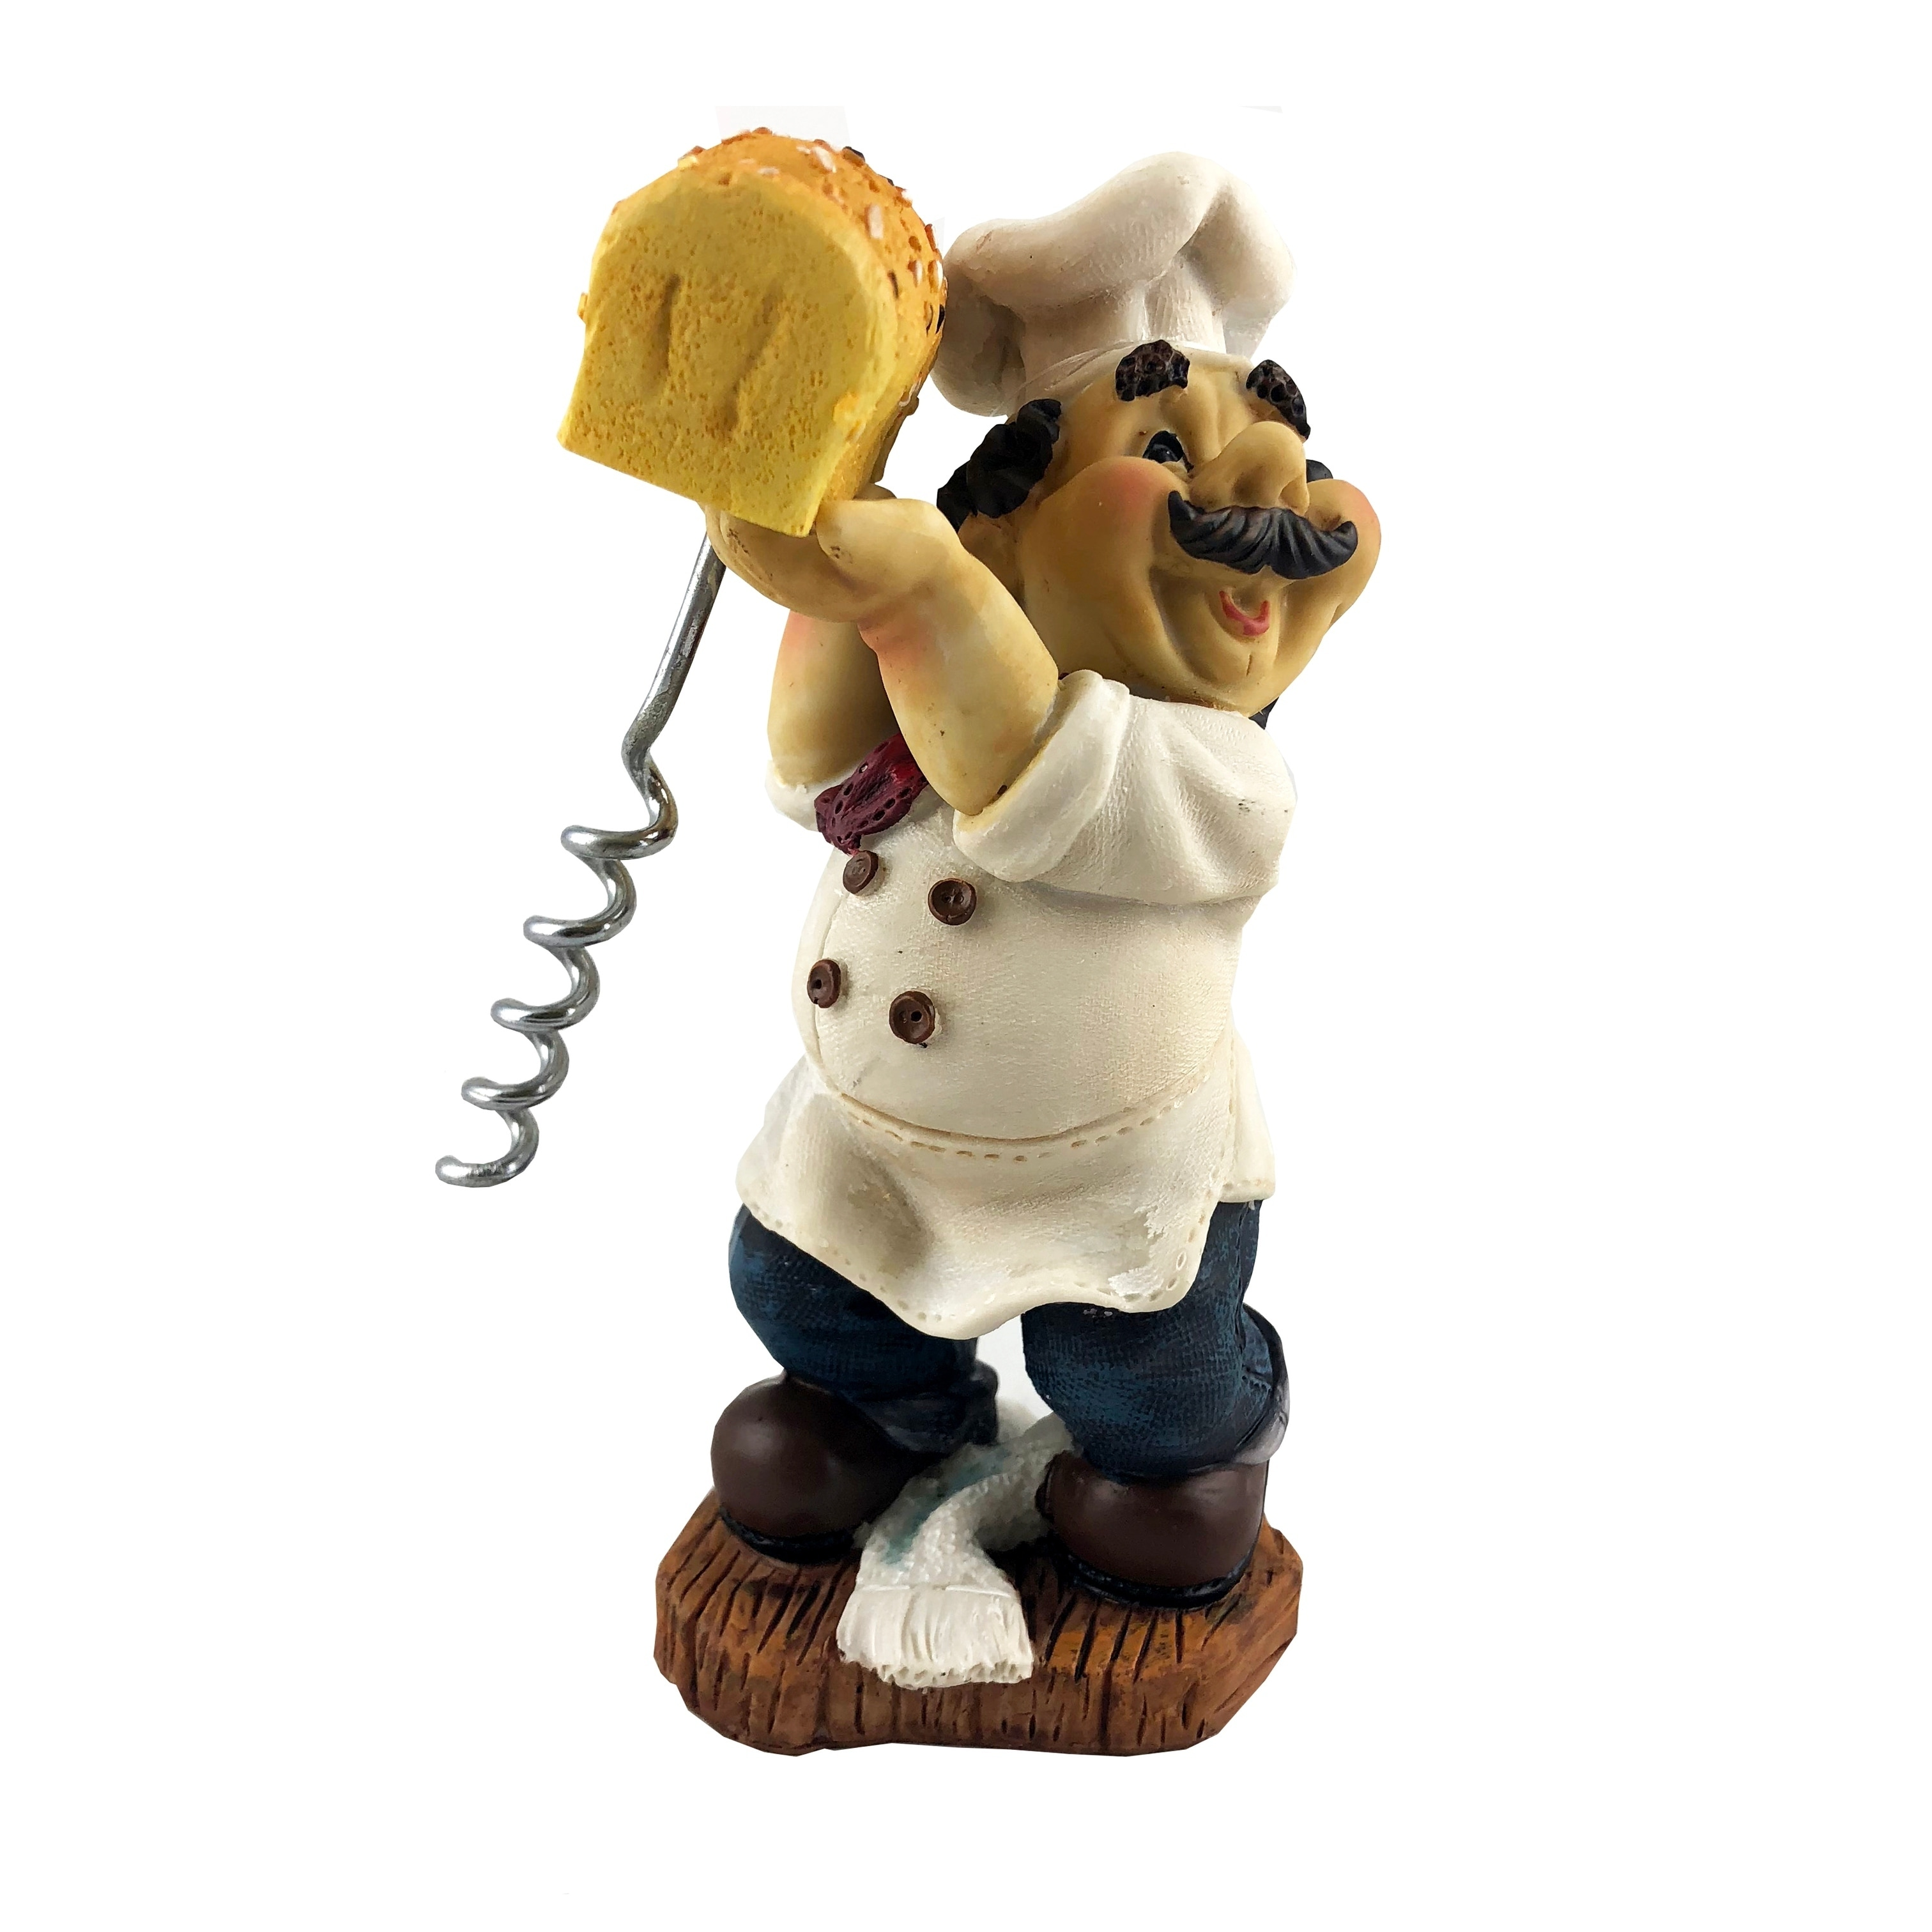 Wine Bodies Fat Chef Italian Baker Holding Bread Figurine Walmart Com